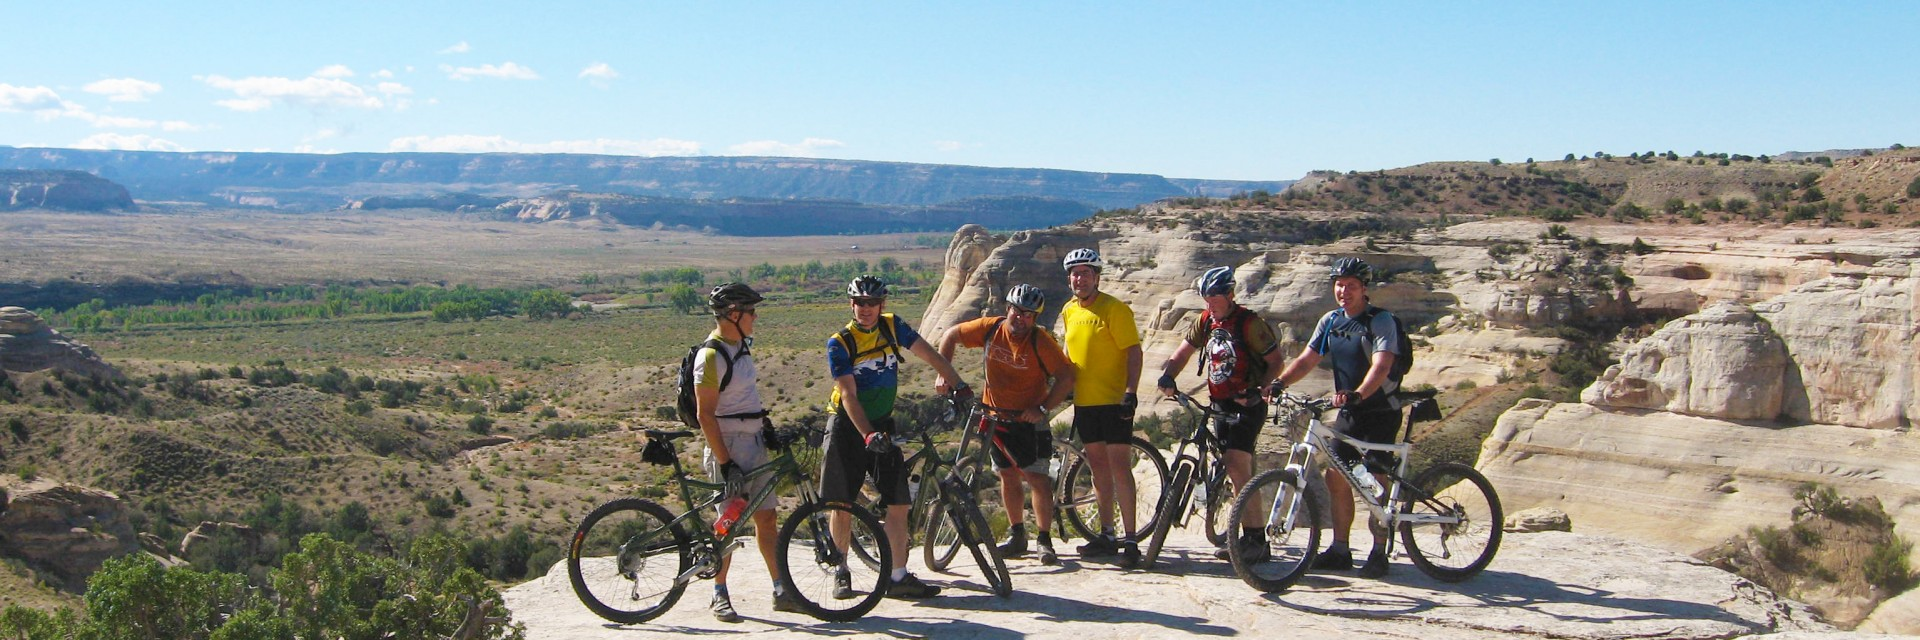 The group gathers along the Western Rim section of the Kokopelli Trail 5-day guided mountain bike tour